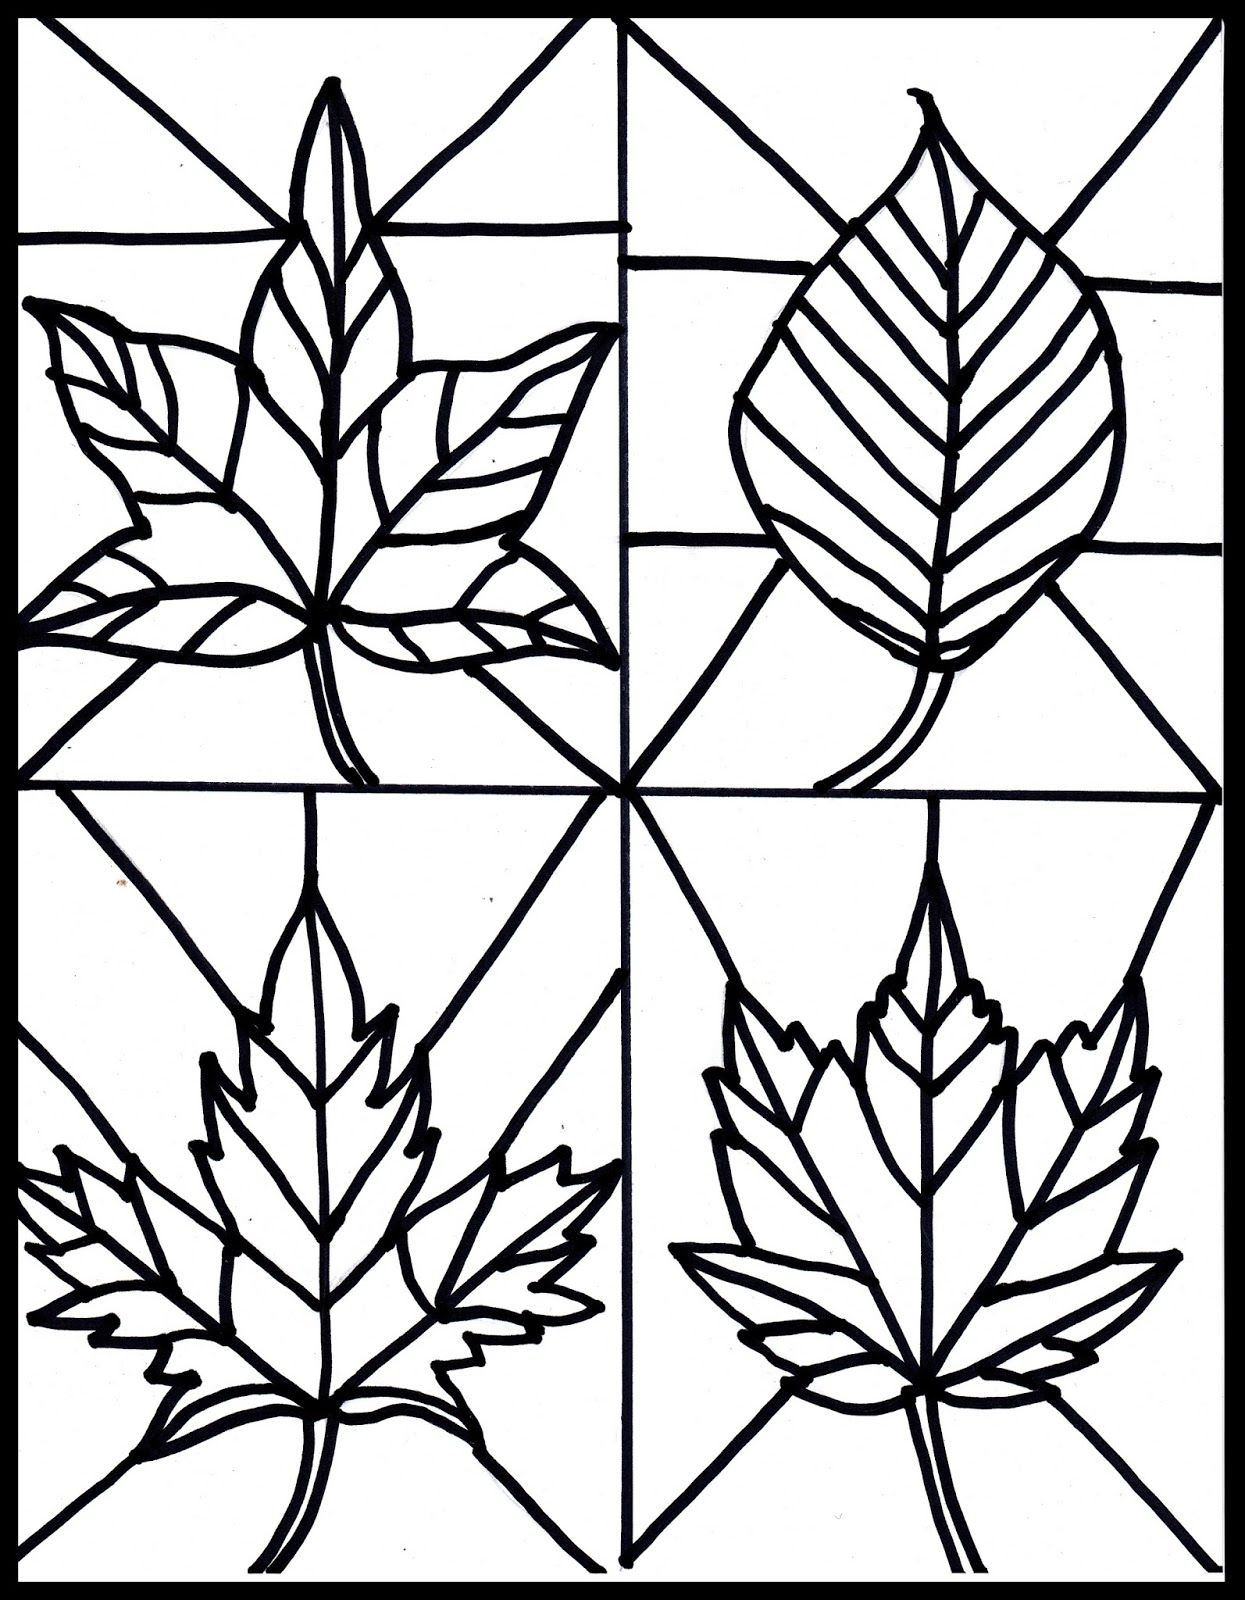 coloring pages of leaves free printables - free fall leaves stained glass printable blogger crafts